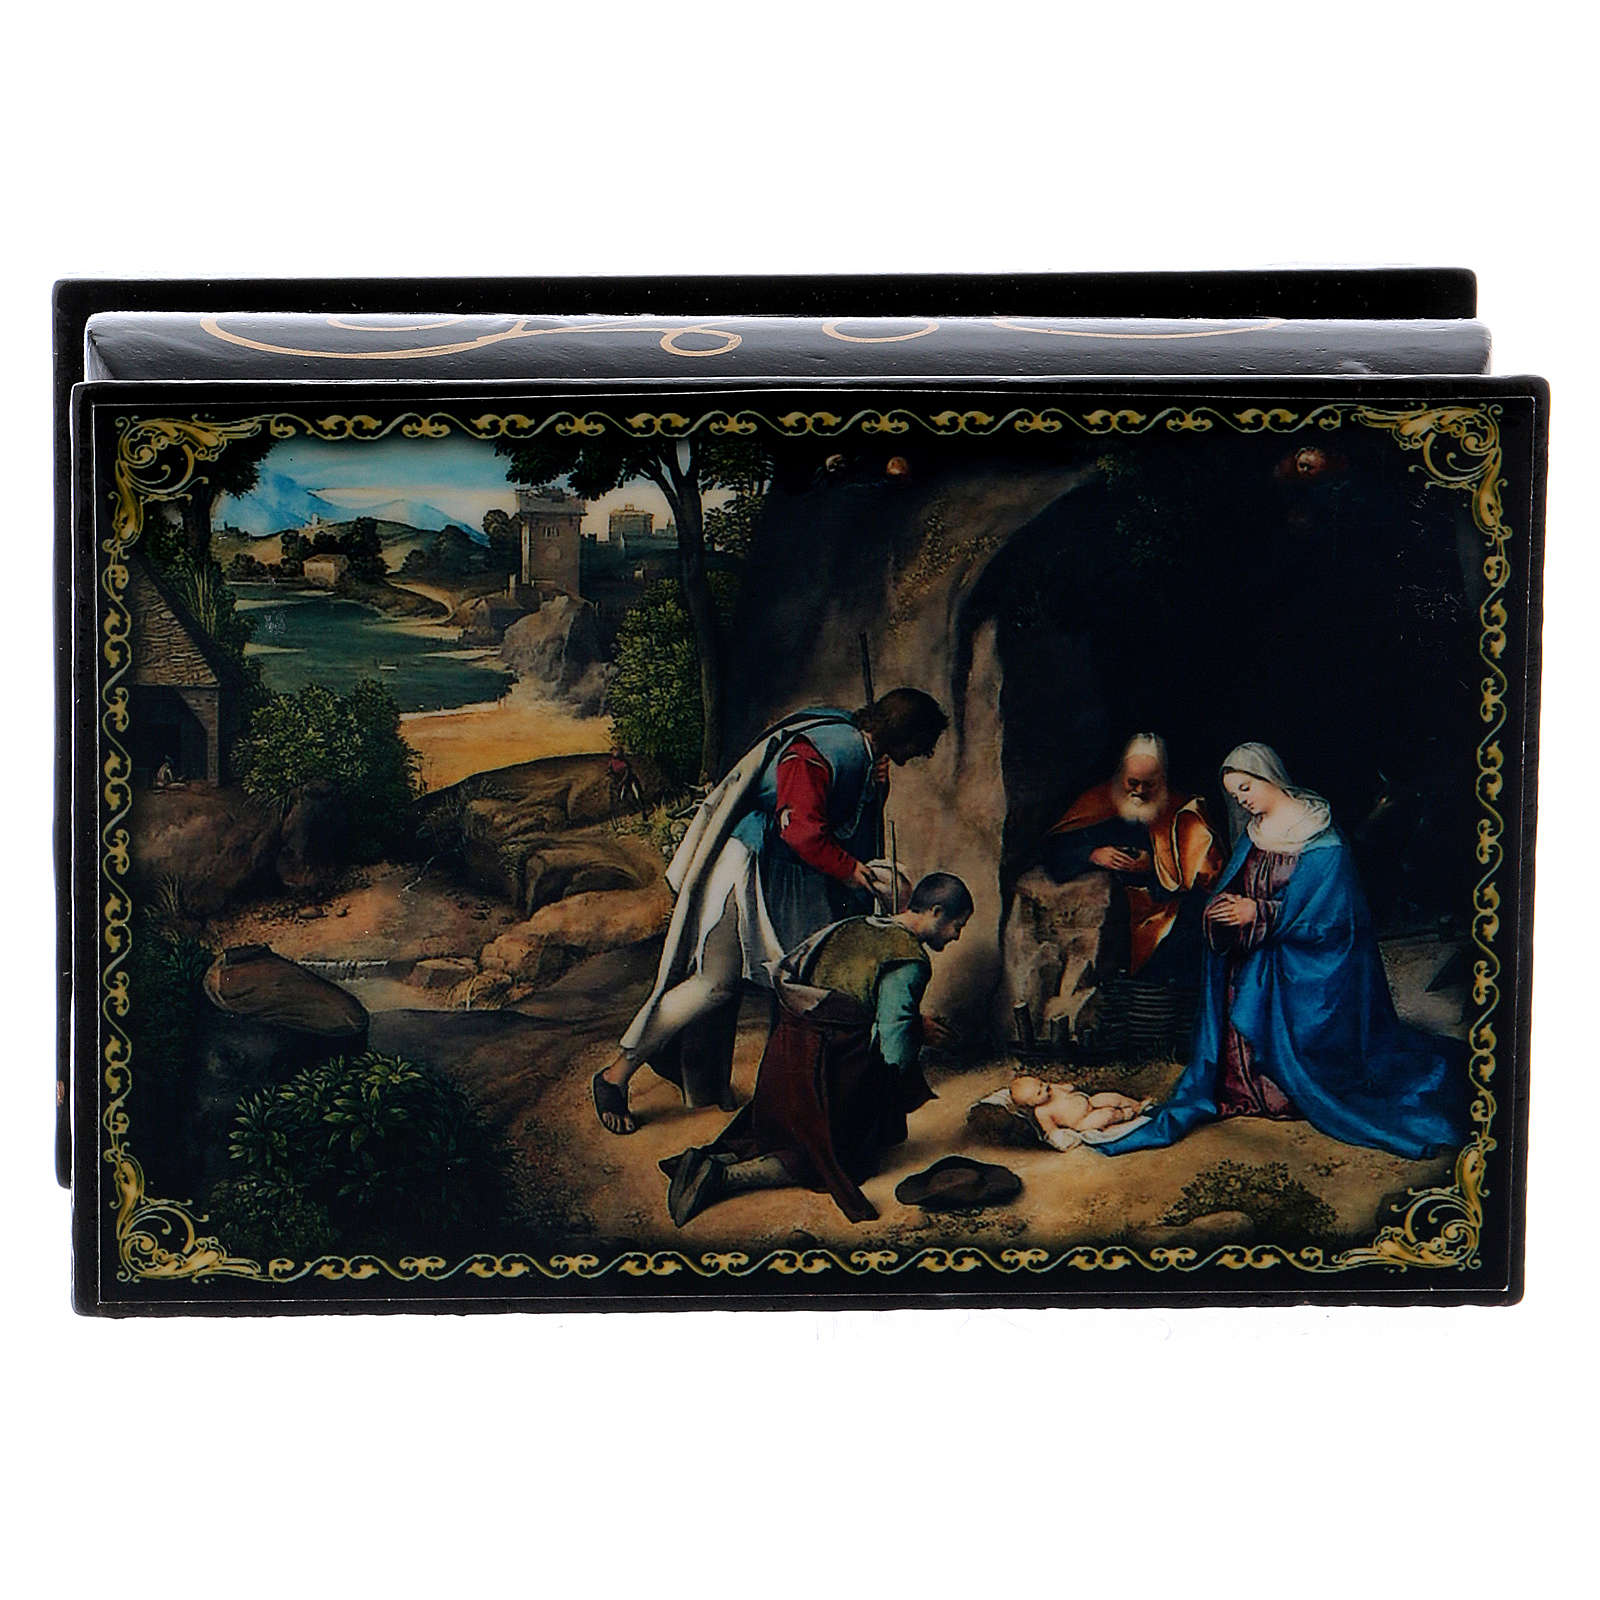 Russian papier-mâché and lacquer box The Adoration of the Shepherds 9x6 cm 4